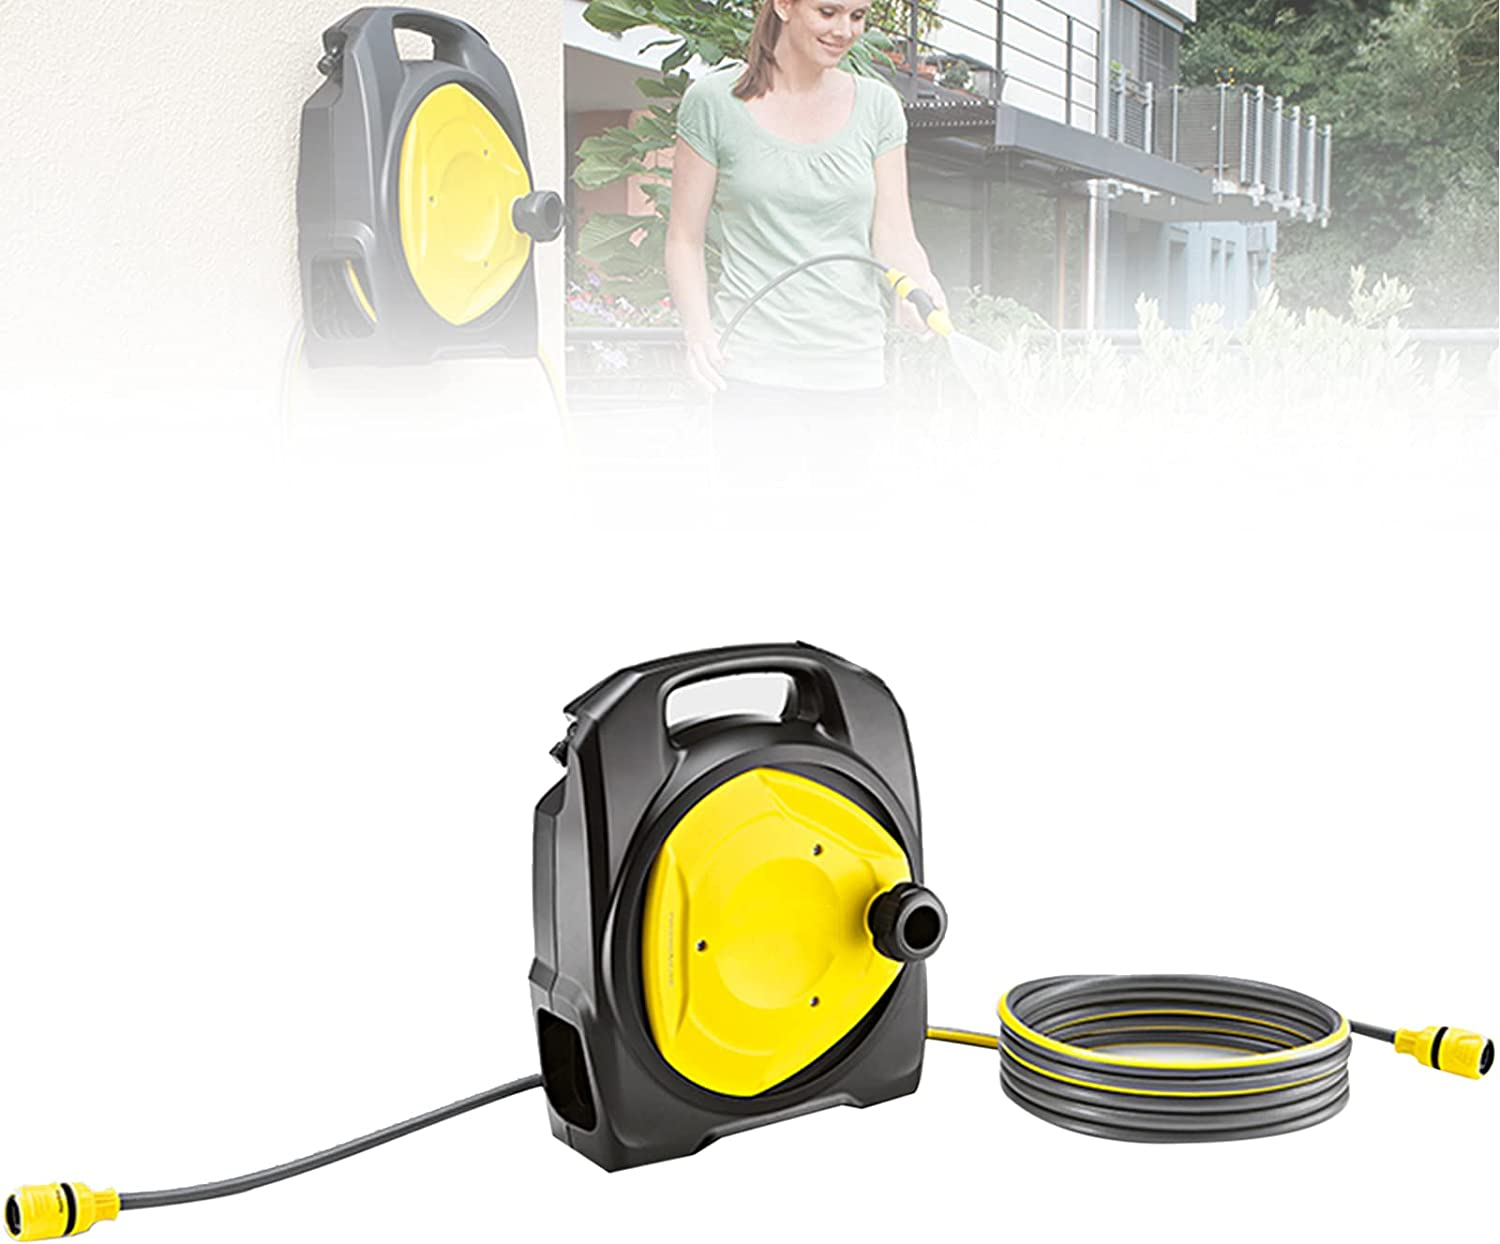 EnweMahi Wall-Mounted Reel Automatic Water NEW before selling ☆ Hose Collection 2021new shipping free shipping